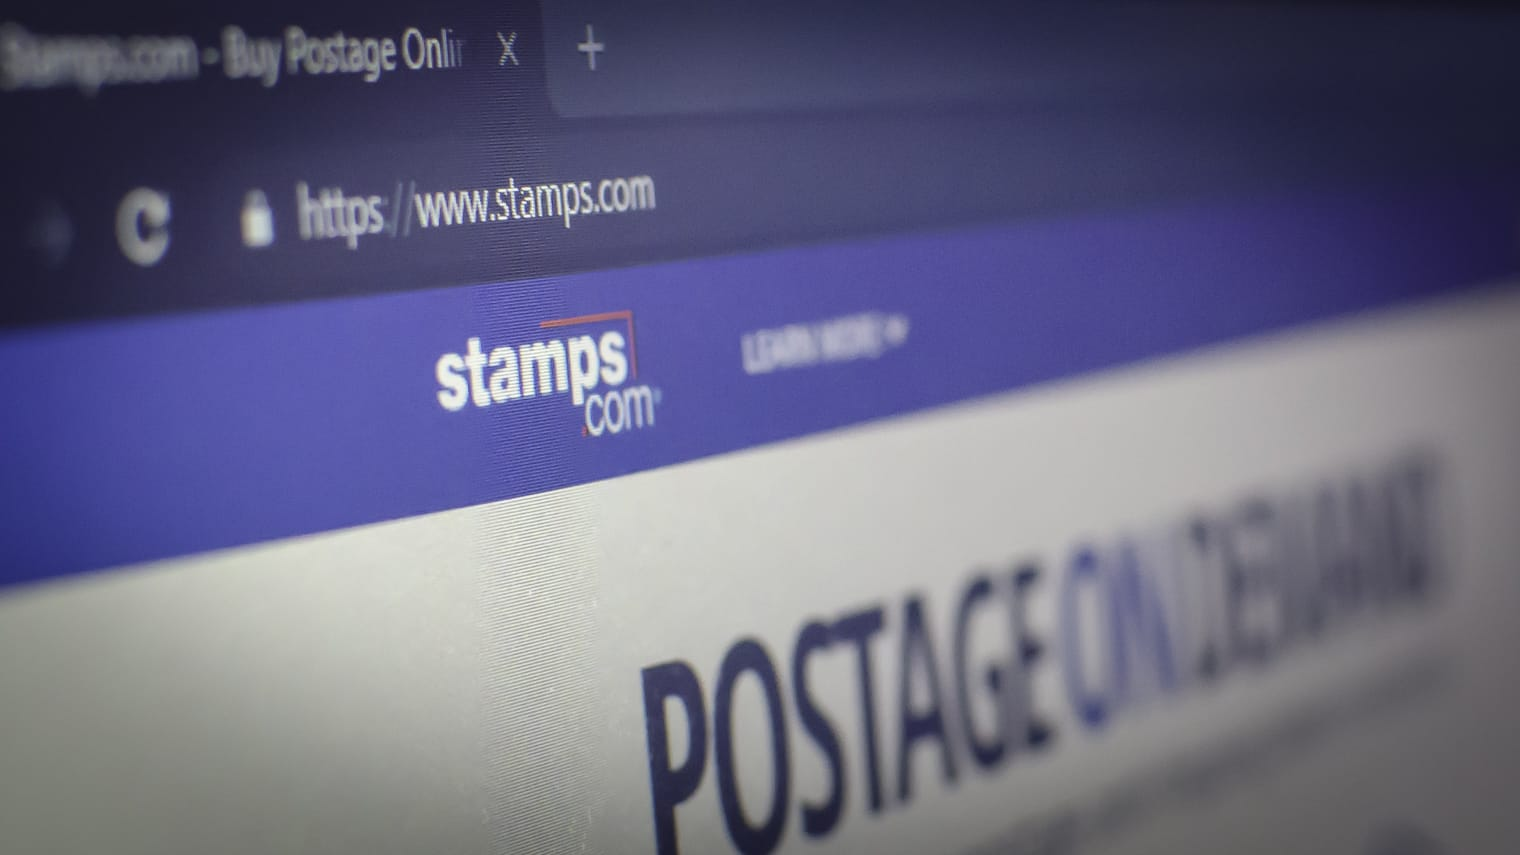 Spurned by USPS' denial to end exclusivity agreement, Stamps com